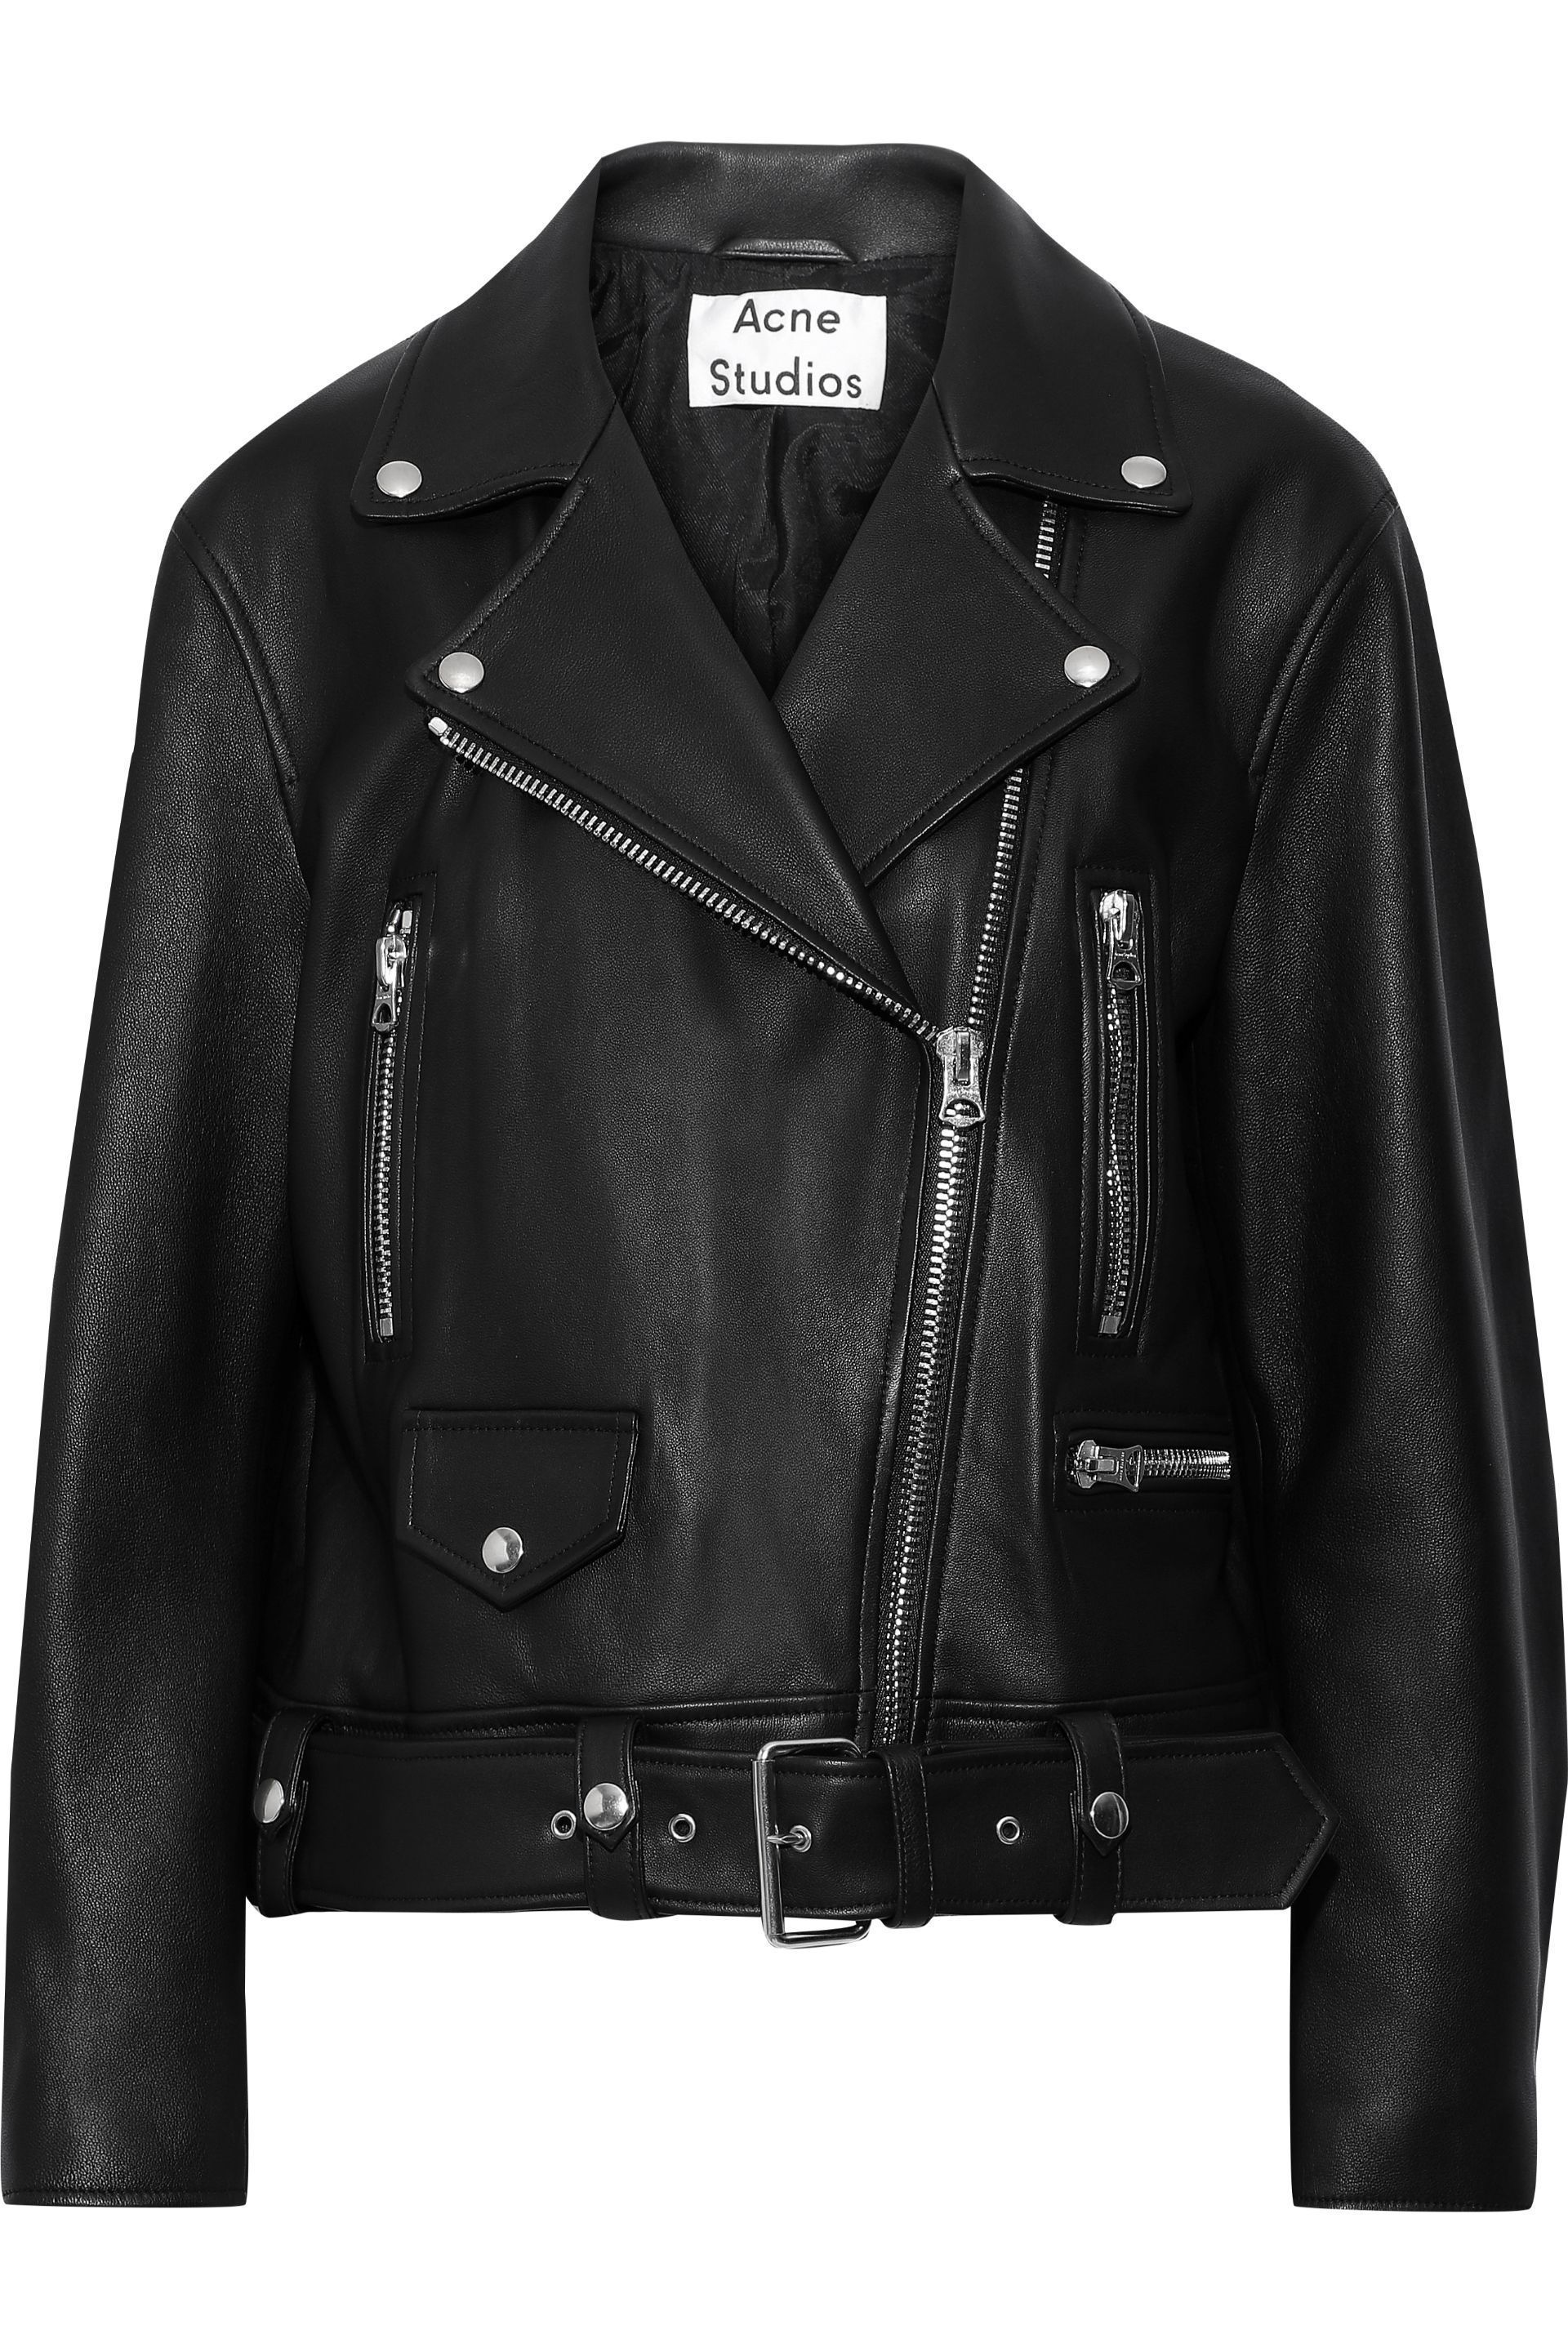 Merlyn leather biker jacket | ACNE STUDIOS | Sale up to 70% off | THE OUTNET ...re. You can use further finishes as well to get the desired effects. One of the best attire in a fashion conscious man's wardrobe is the leath... wrist line. It is ending or exceeding the wrist line then you have taken up the wring choice.Trials are very essential. It helps you in checking out #blog.burkfashions.com #leather-jackets-biker #fashion